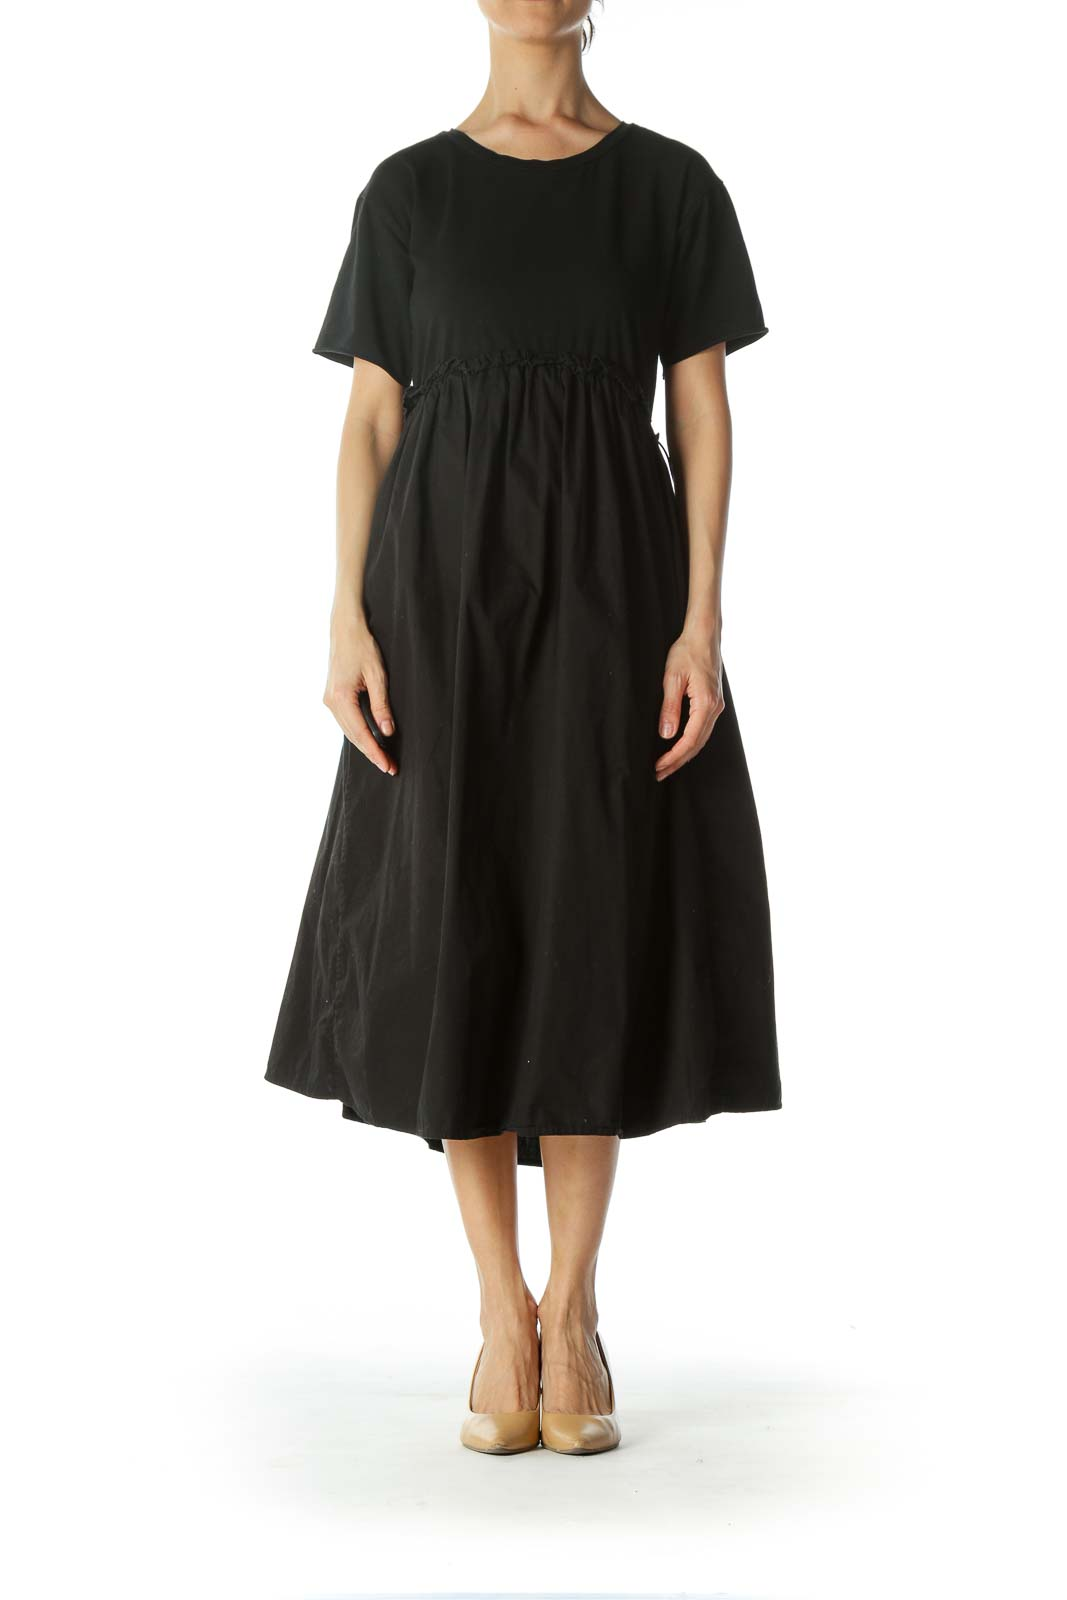 Black 100% Cotton Mixed-Media Elastic-Waist-Detail Dress